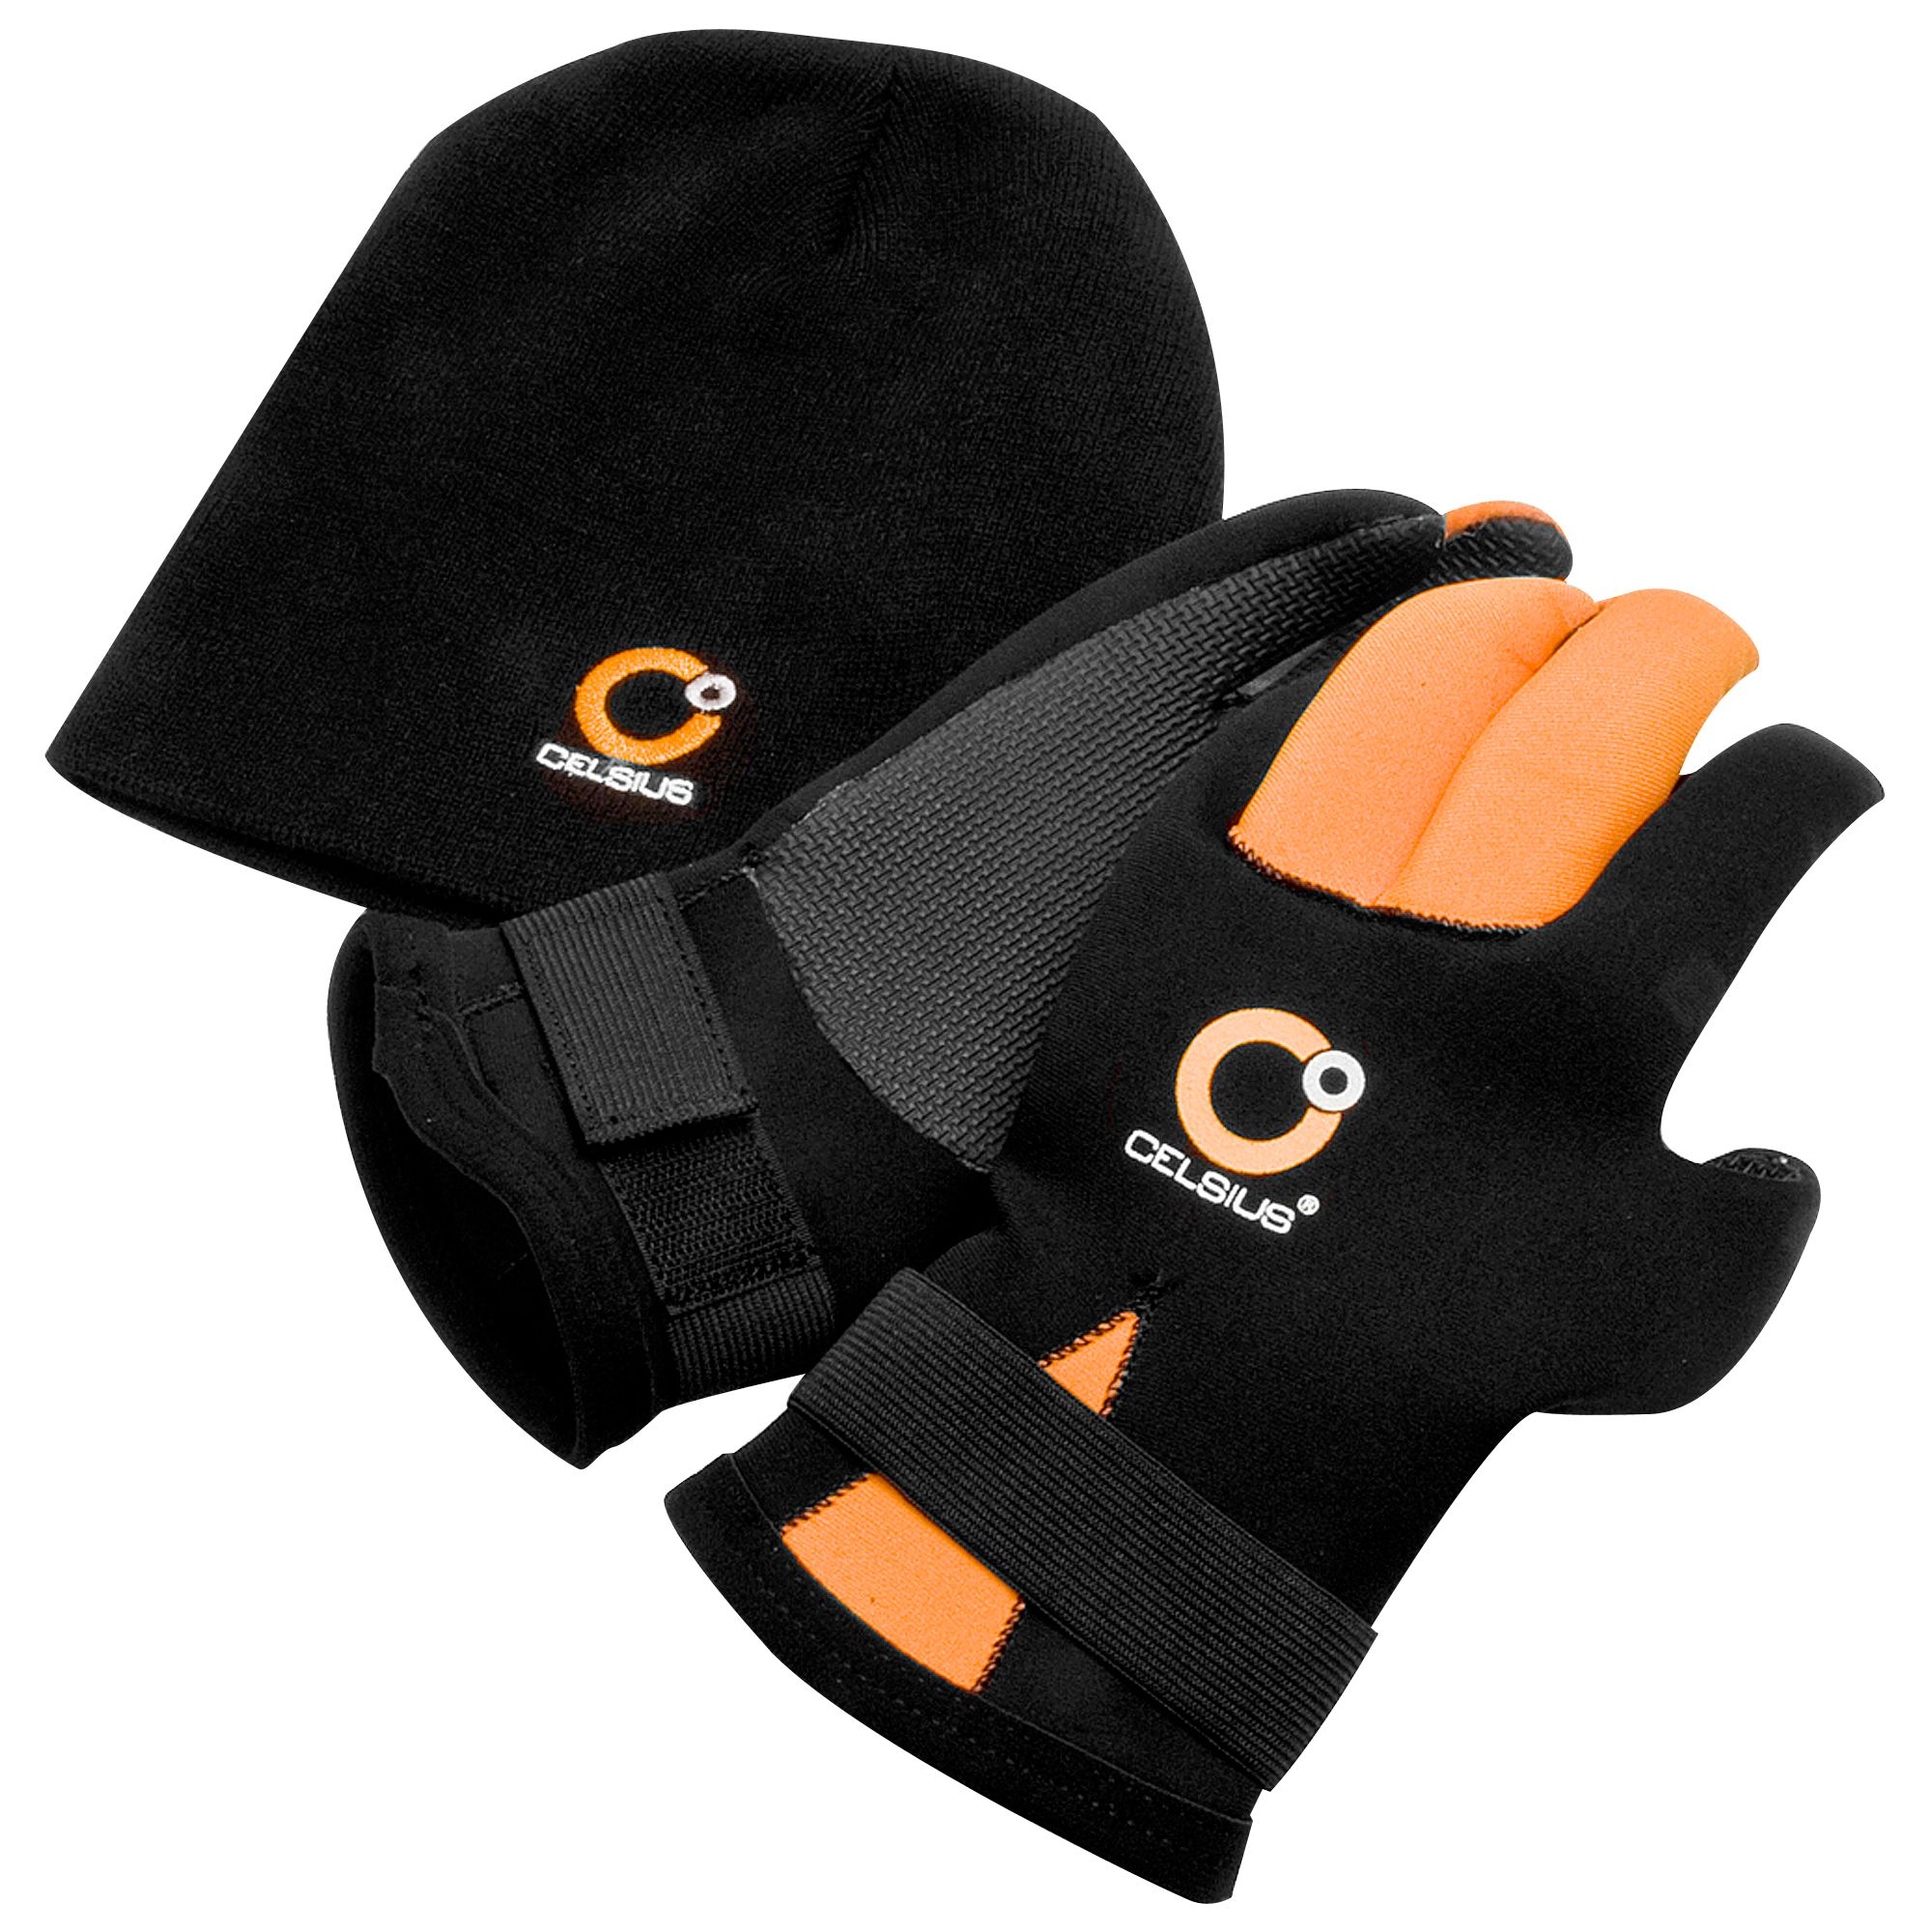 Mens gloves use iphone - Product Image Celsius Adult Neoprene Gloves And Hat Combo